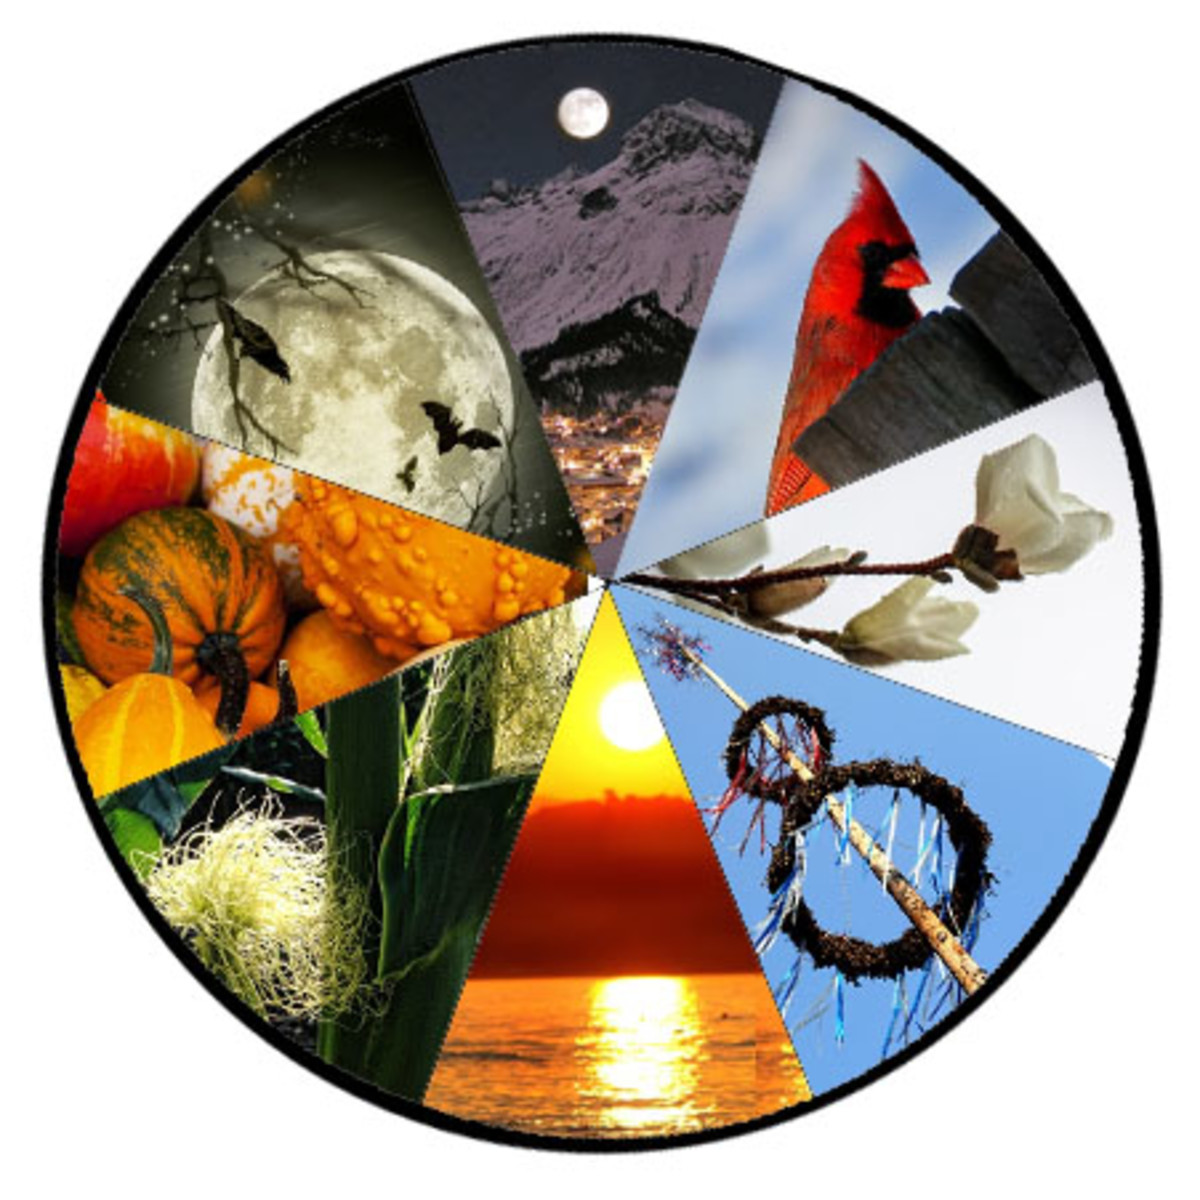 An Overview of the Wiccan Wheel of the Year